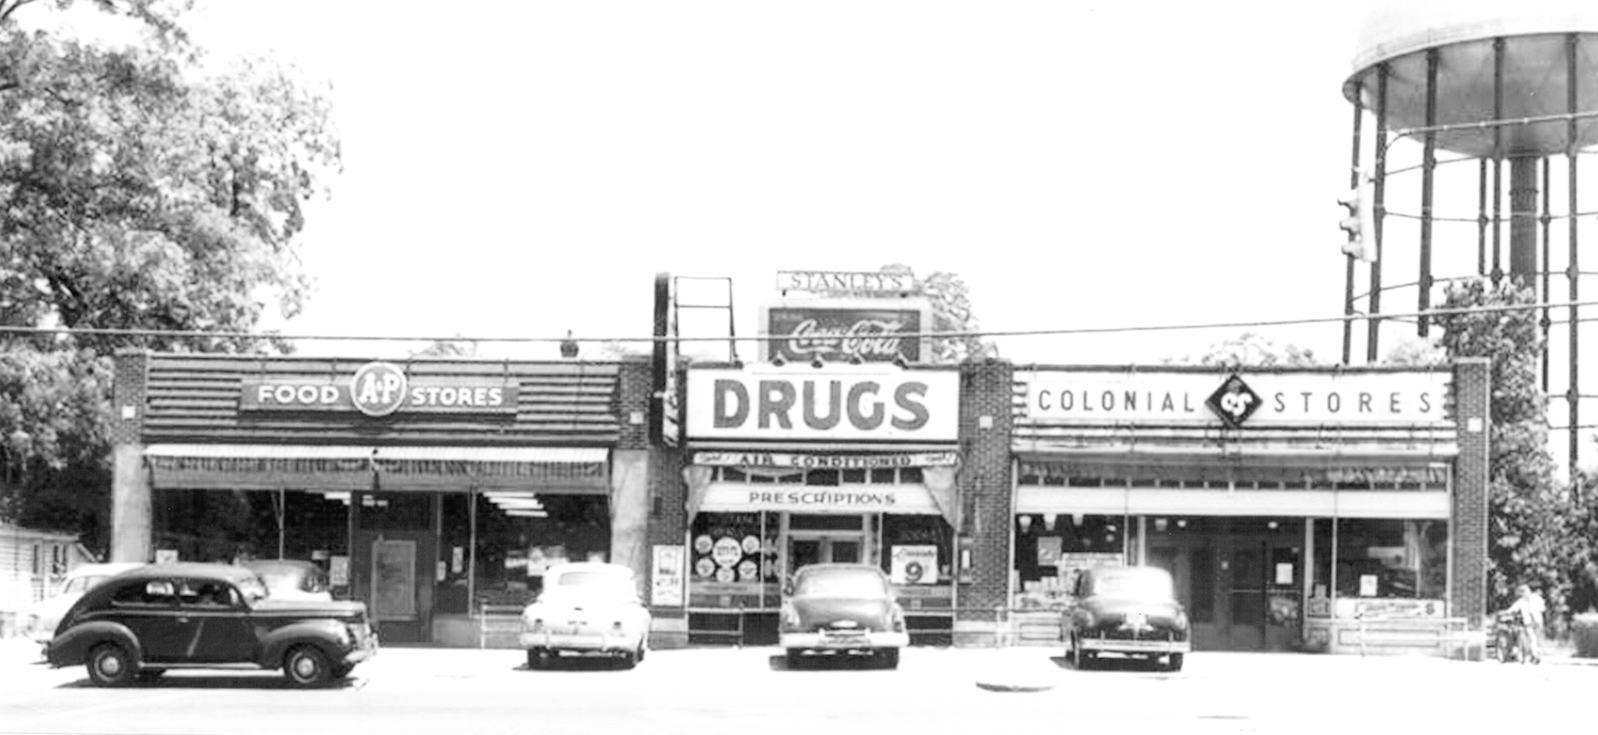 stanley specialty pharmacy circa 1933